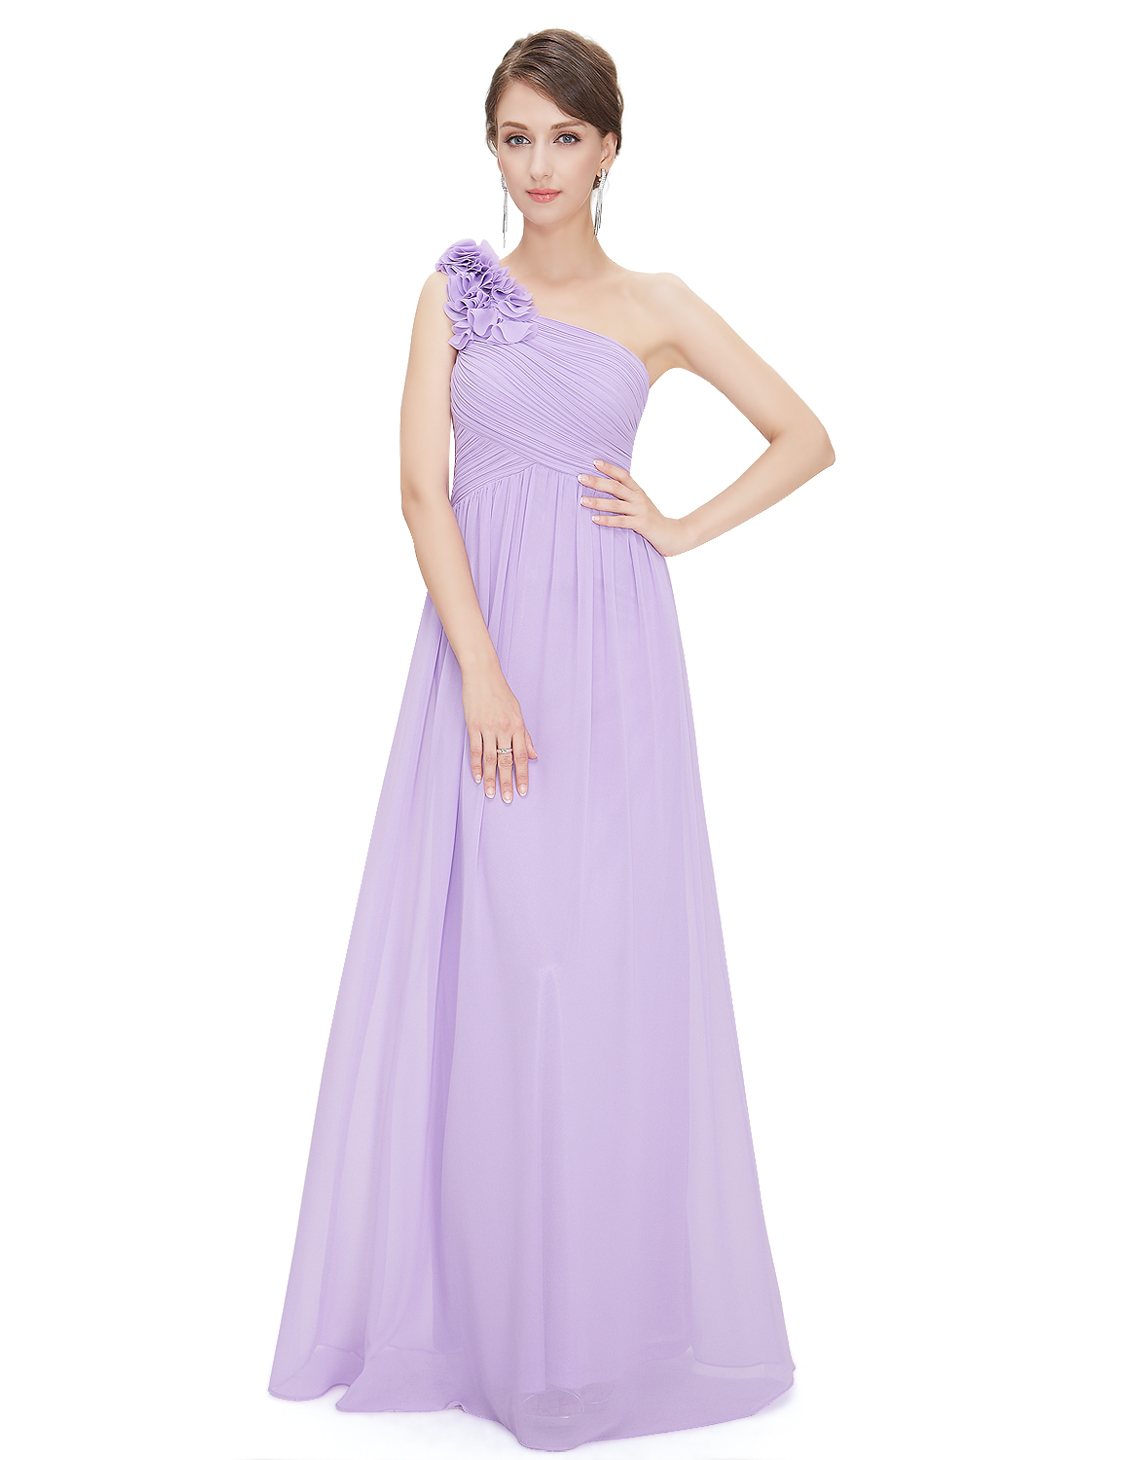 Womens one shoulder bridesmaid dress long prom evening formal women 039 s one shoulder bridesmaid dress long ombrellifo Gallery